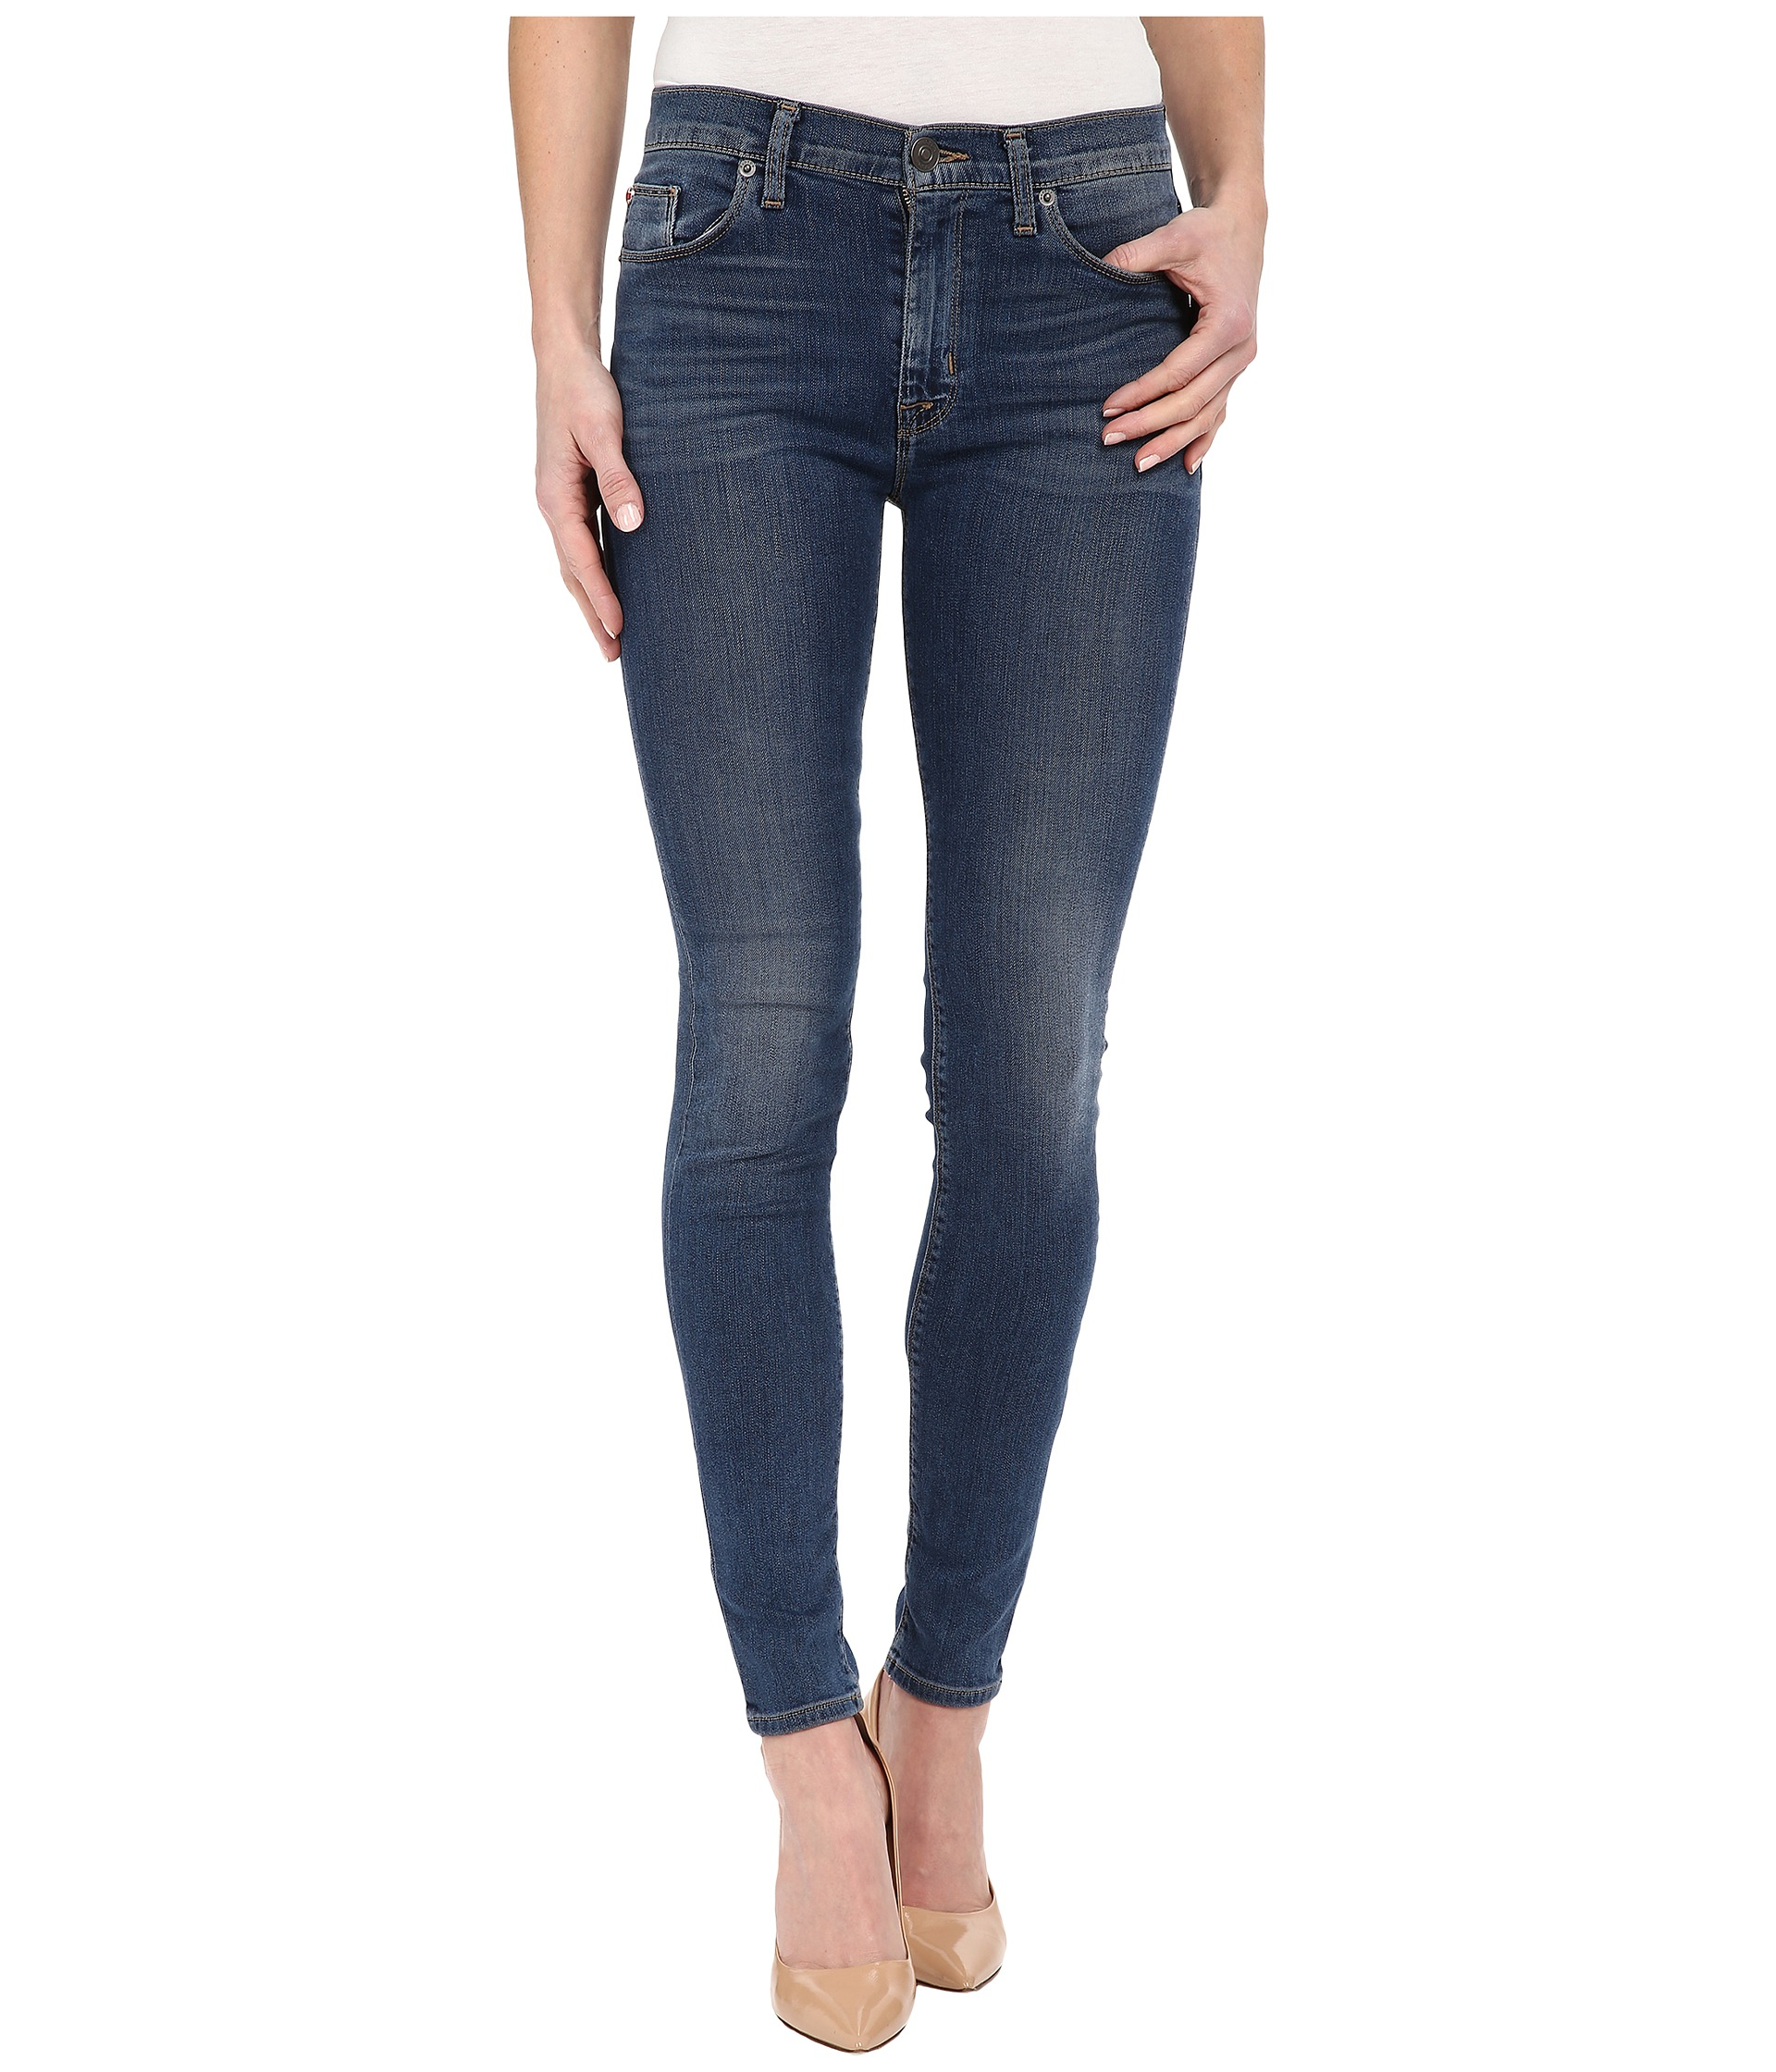 6ffabb63f44d Lyst - Hudson Jeans Barbara High Waist Super Skinny In Moonlet in Blue